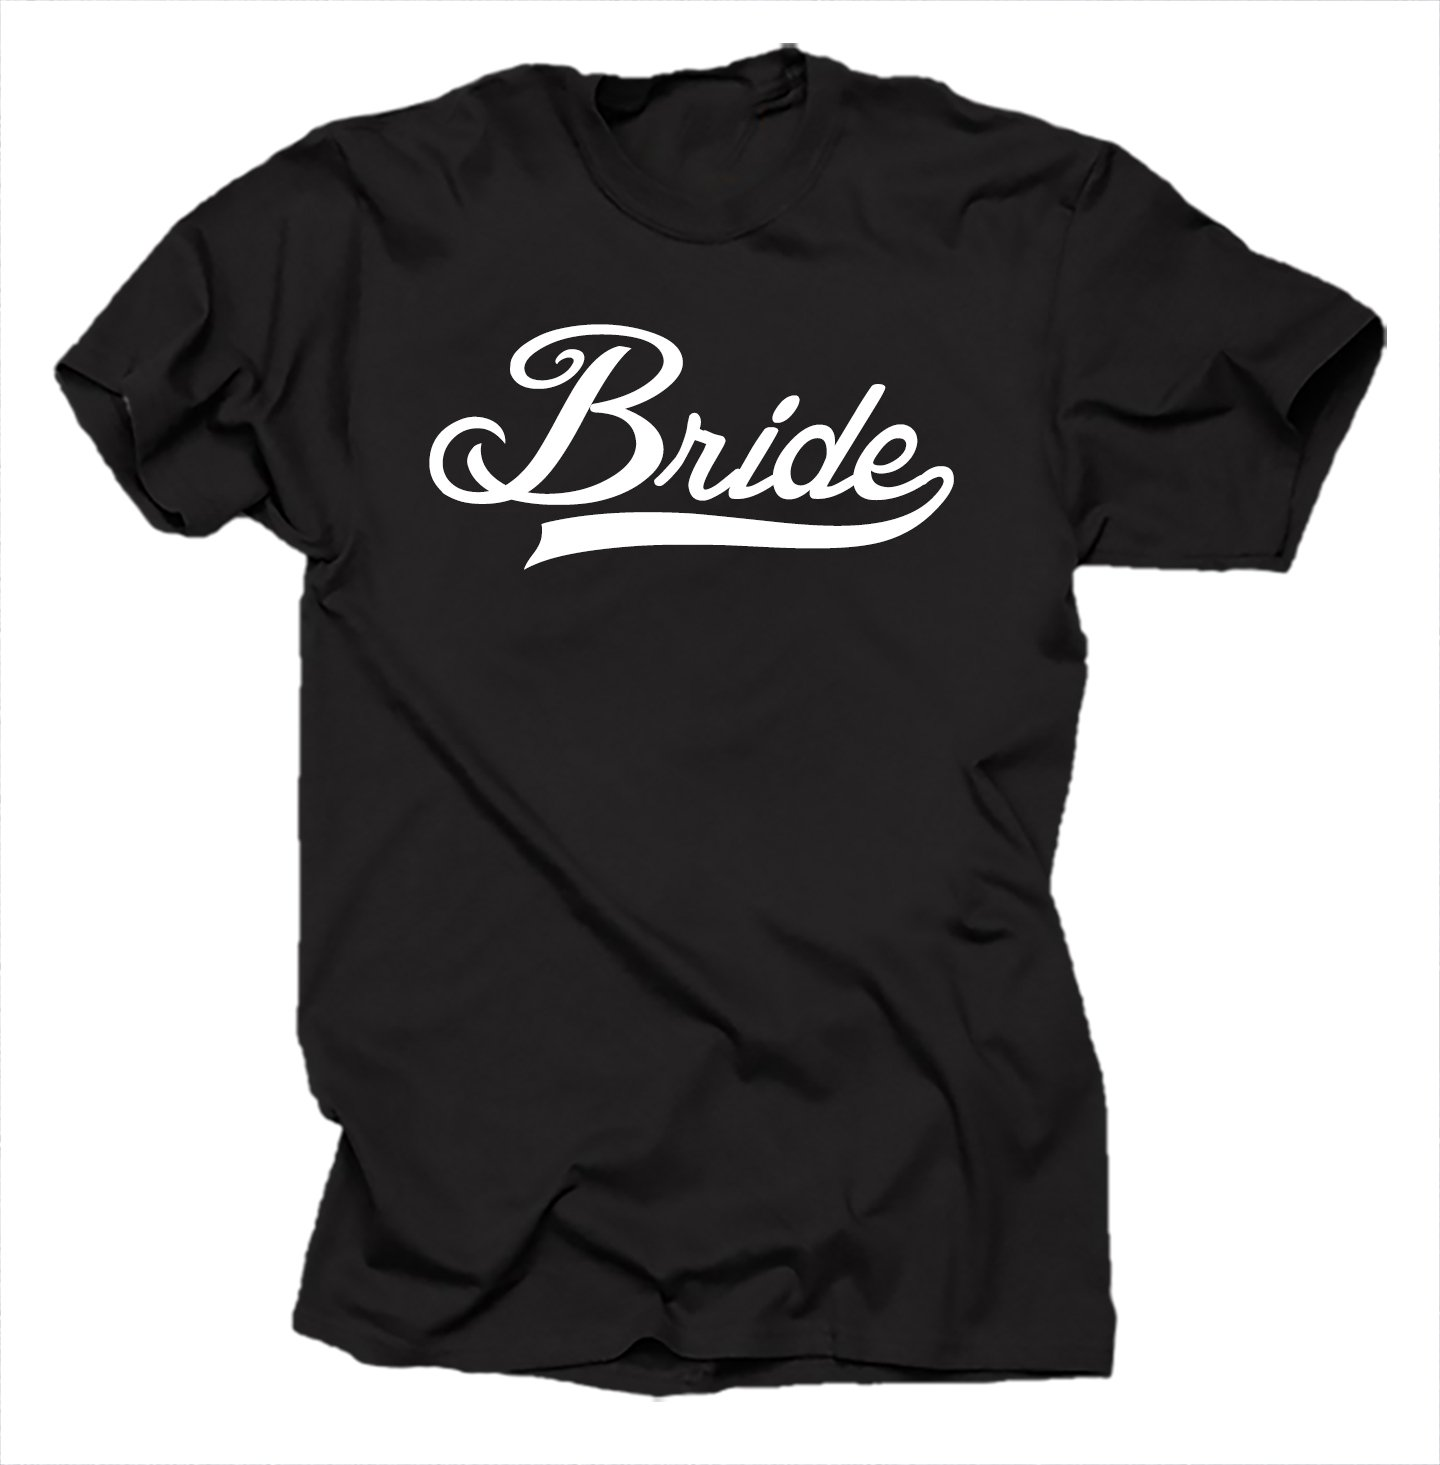 Milky Way Tshirts Bride T-Shirt Wedding Engagement T Shirt 5XL Black